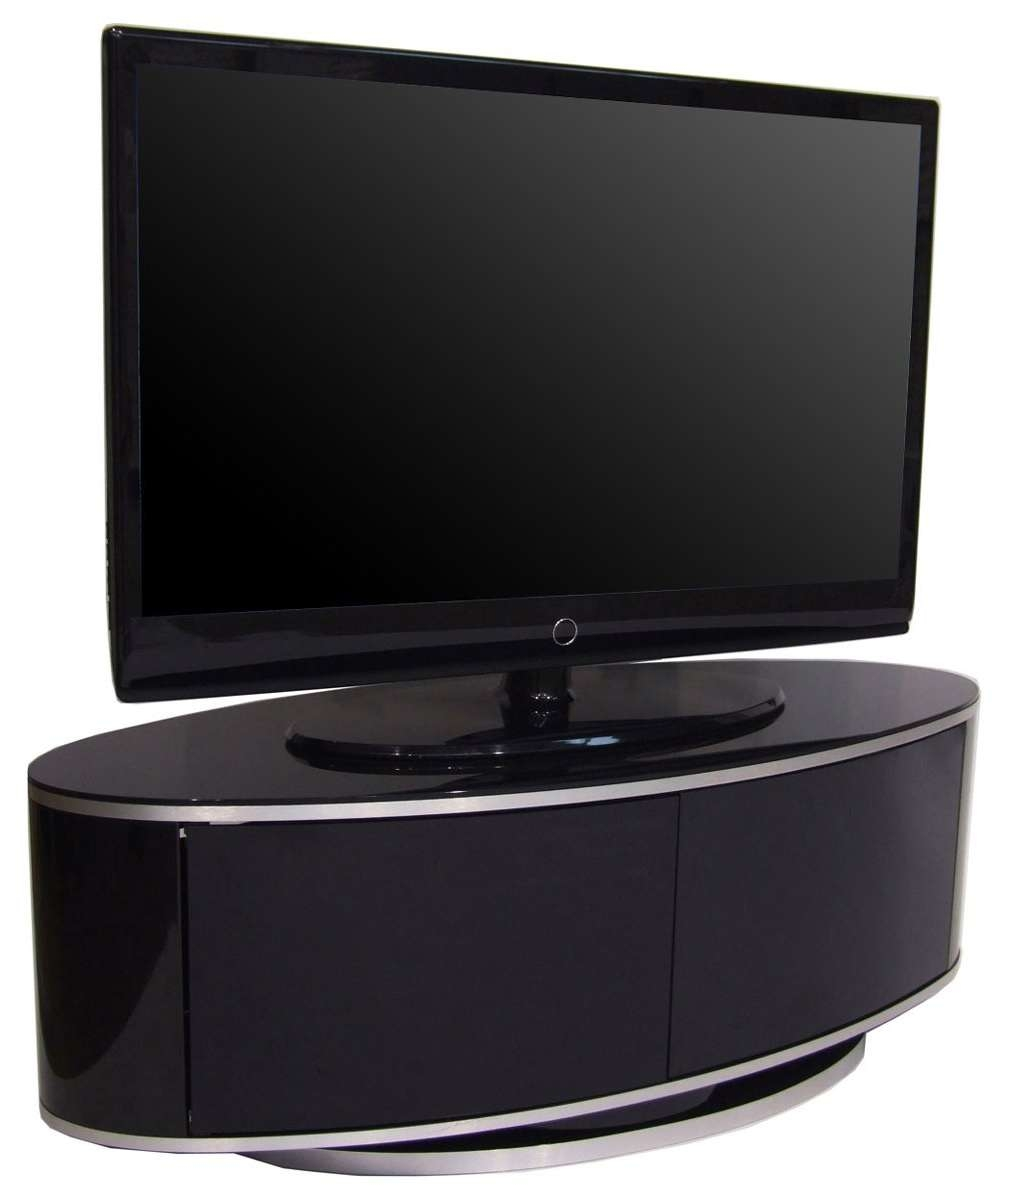 Luna High Gloss Black Oval Tv Cabinet Inside White Gloss Oval Tv Stands (View 7 of 20)